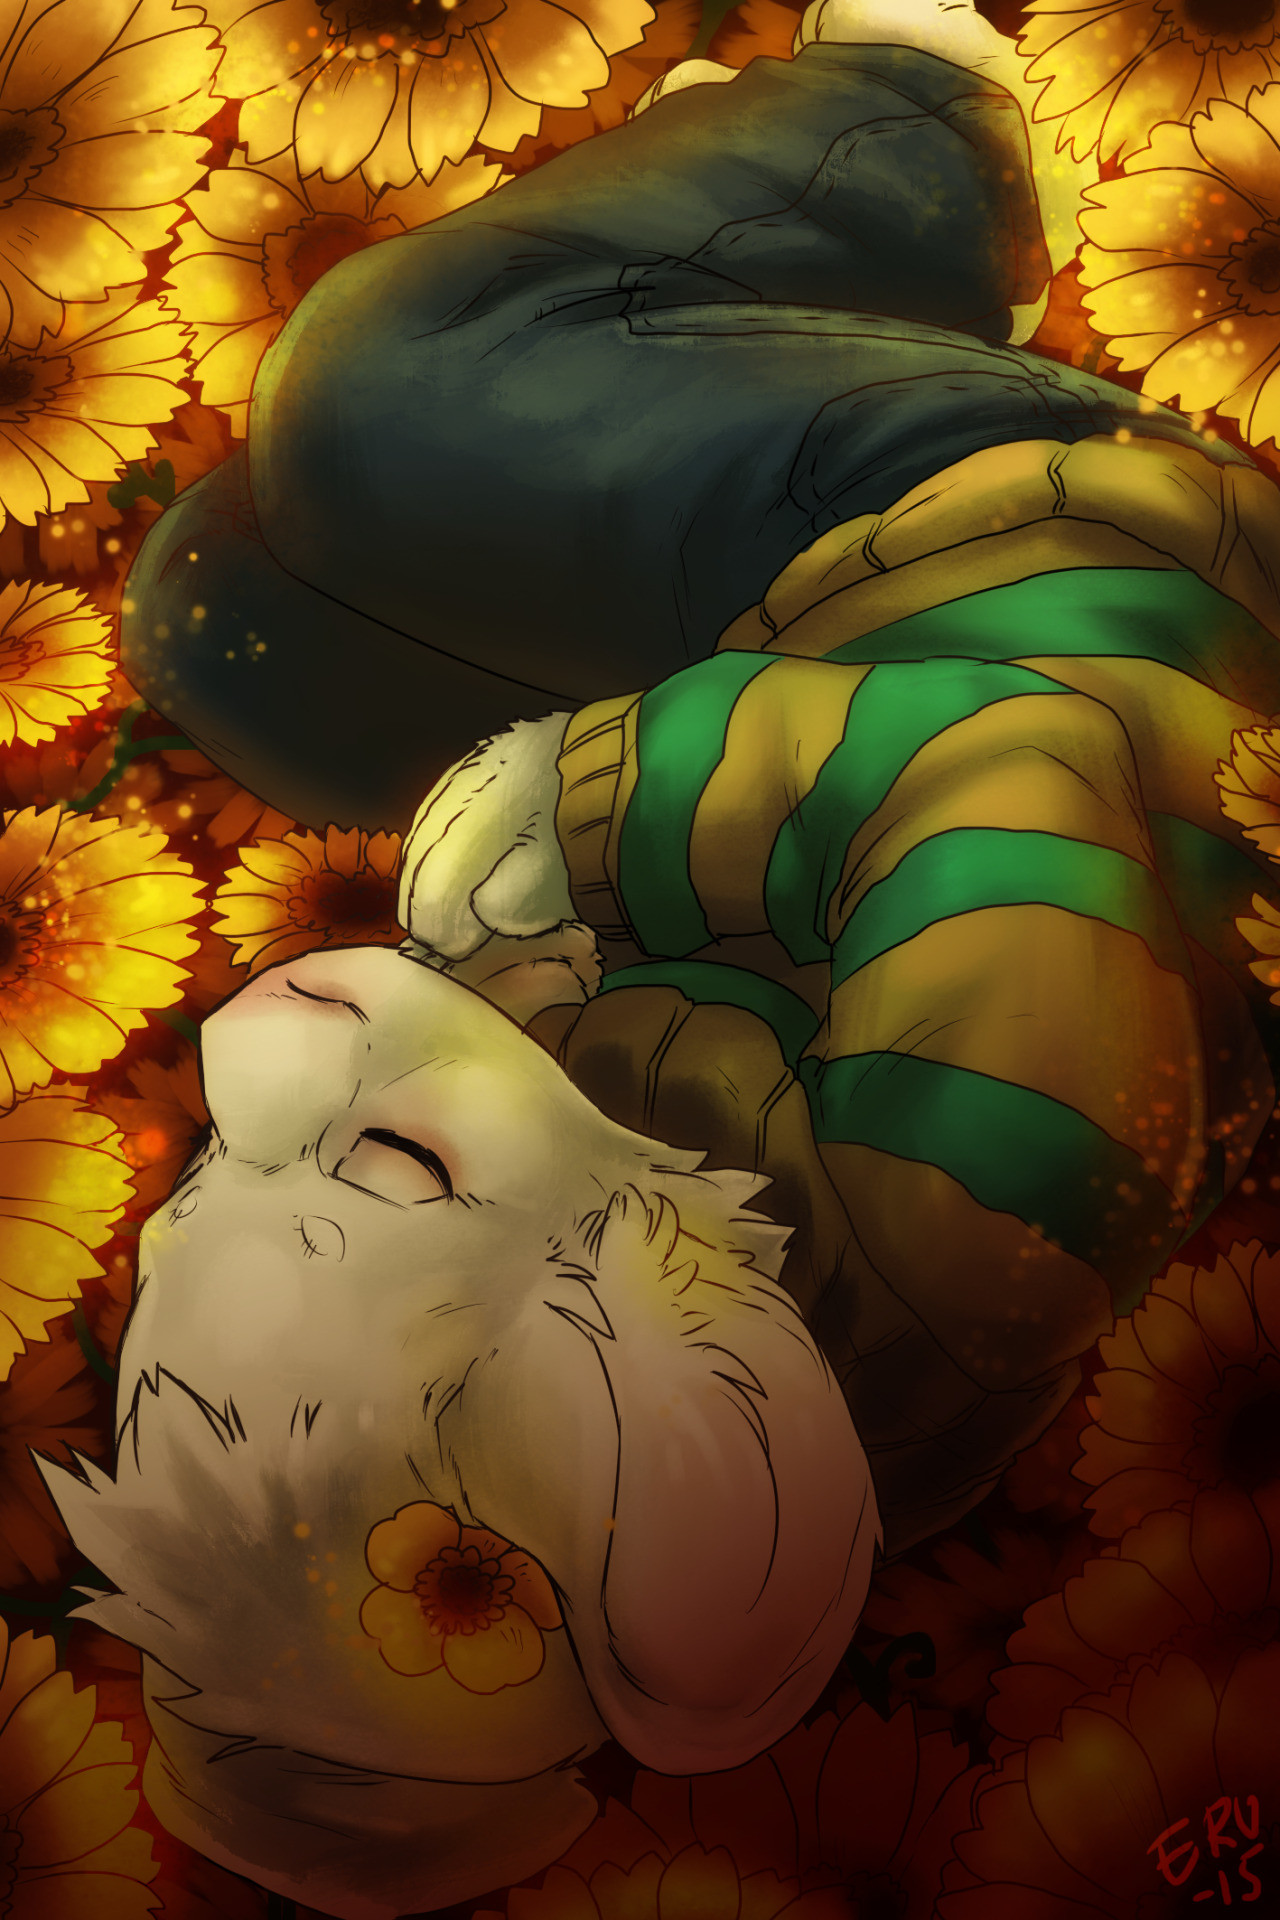 Undertale Mobile Wallpaper. by GenexicanNov 15 2015. Load 28 more images  Grid view